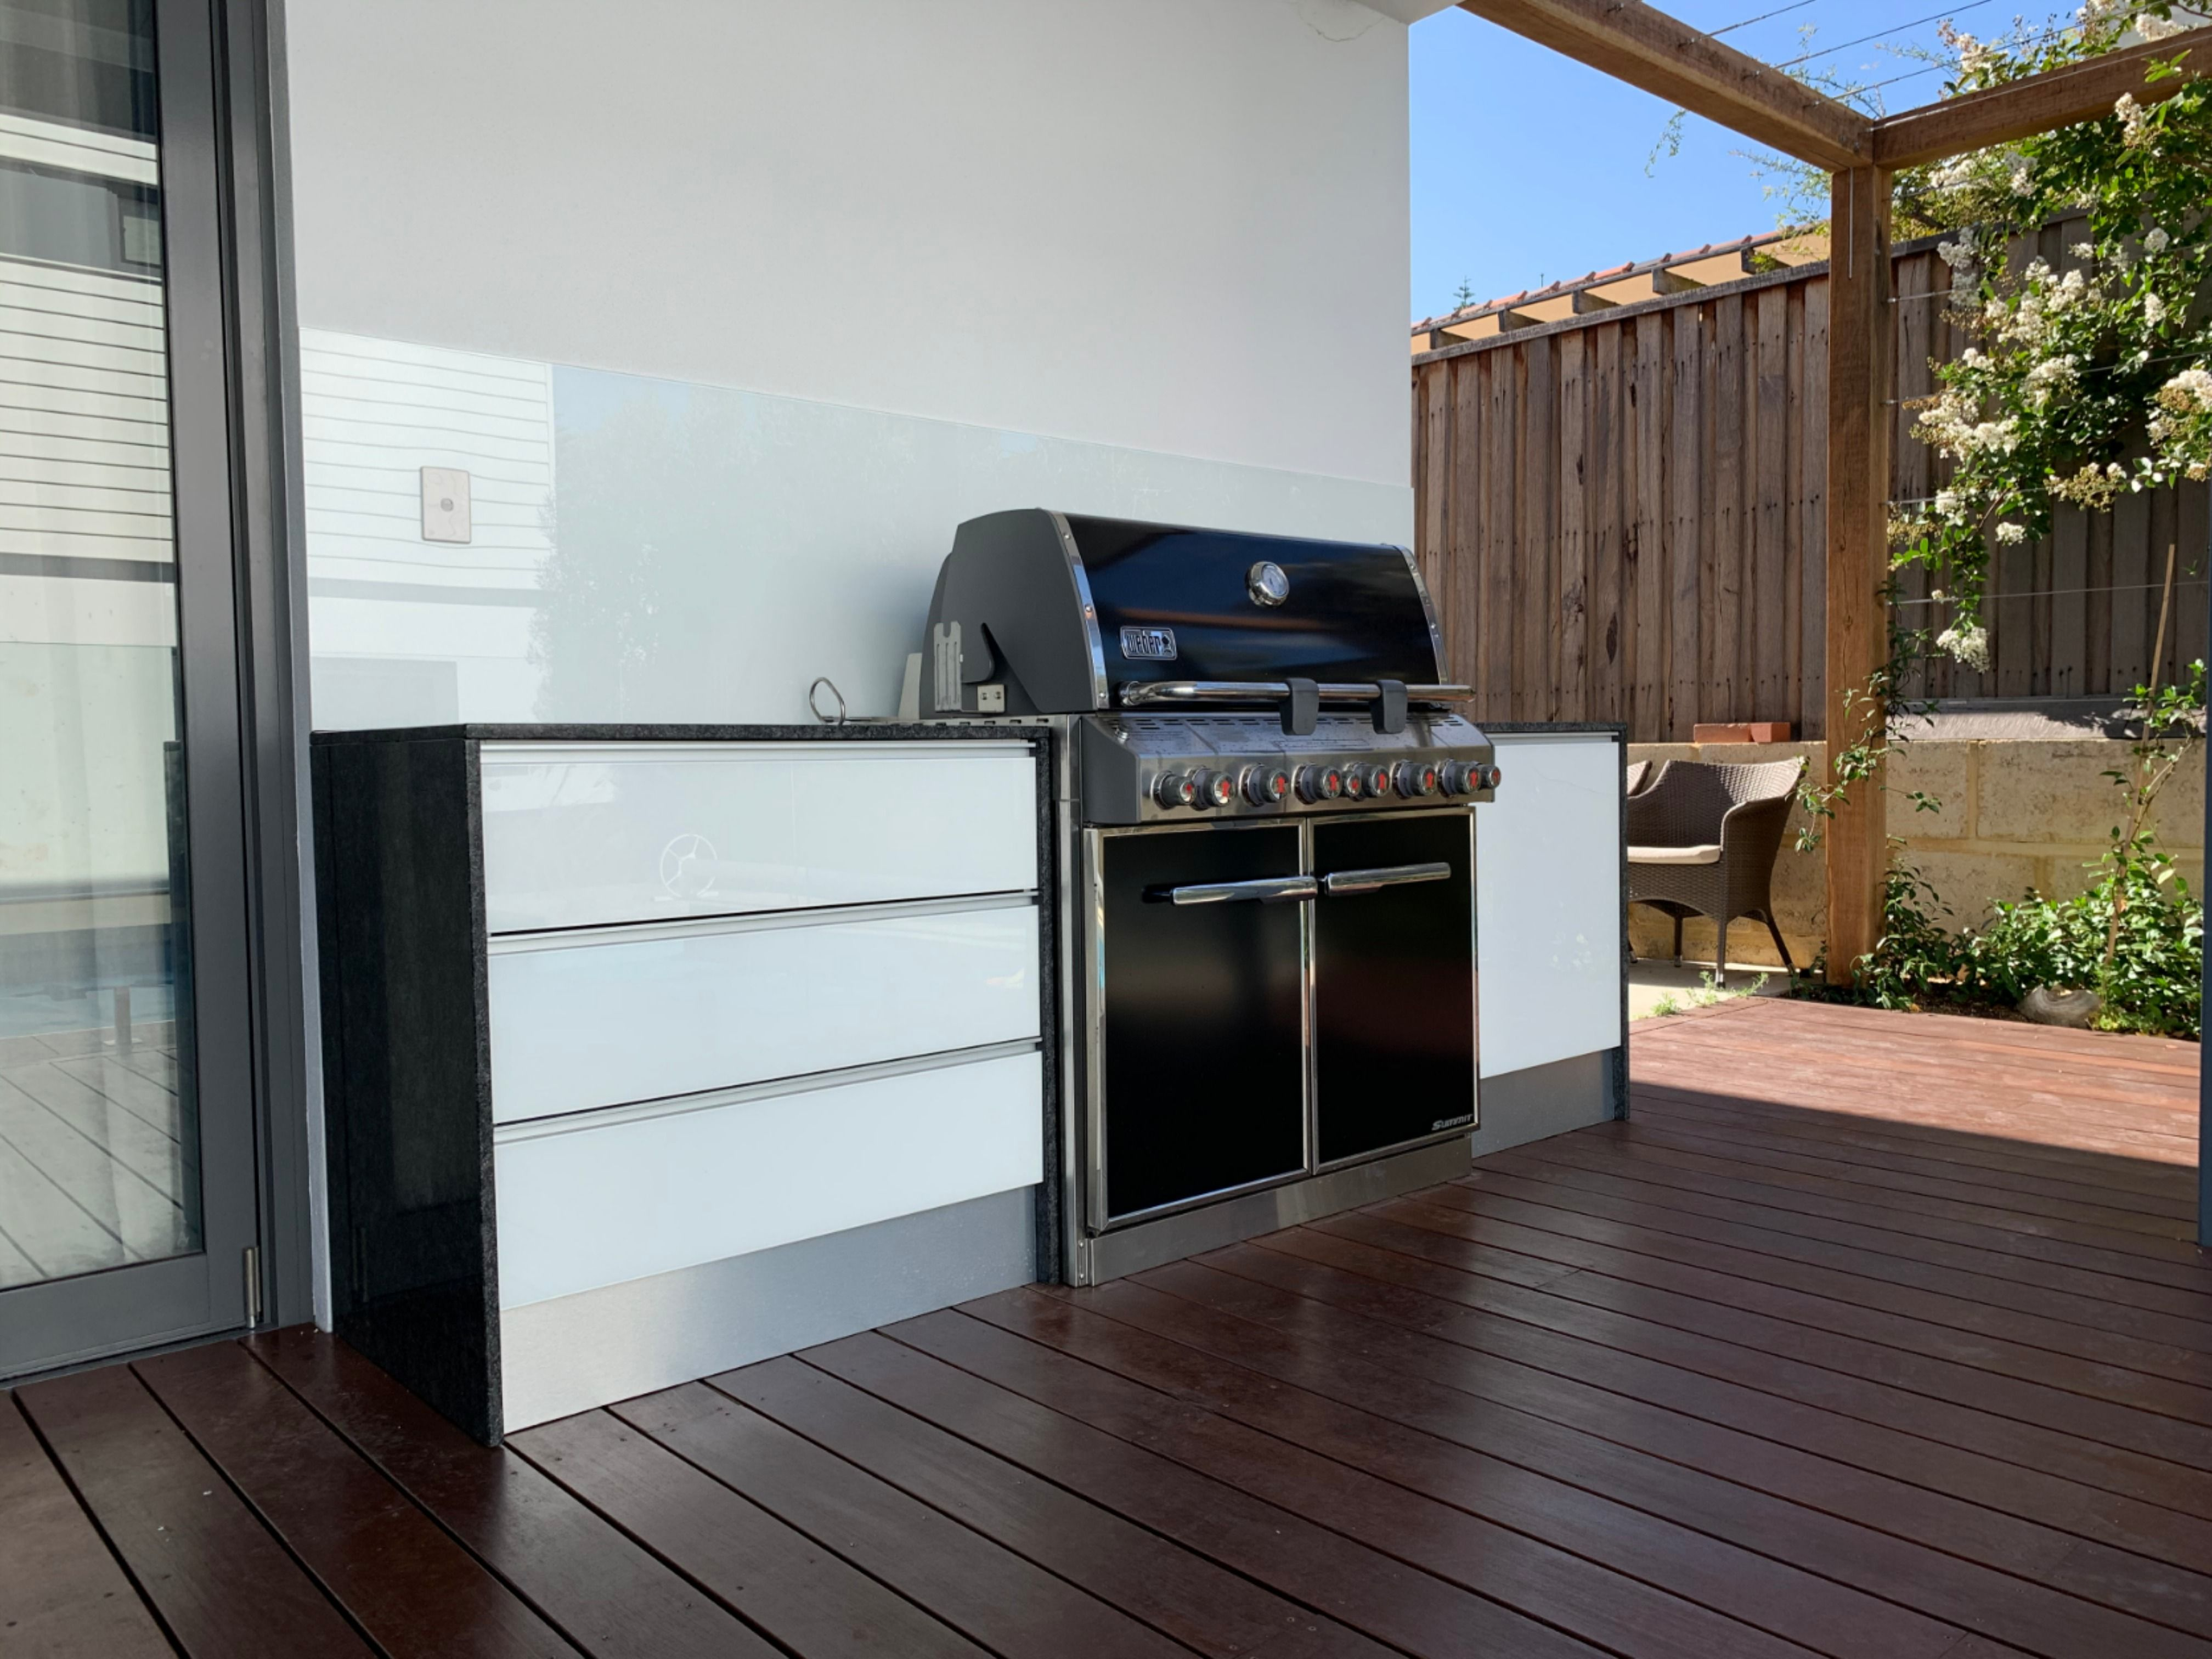 Another One Of Our Quality Outdoor Kitchen Installs Featuring The King Of All Barbecues The Weber Summit Along Wit In 2020 Outdoor Kitchen Kitchen Installation Outdoor